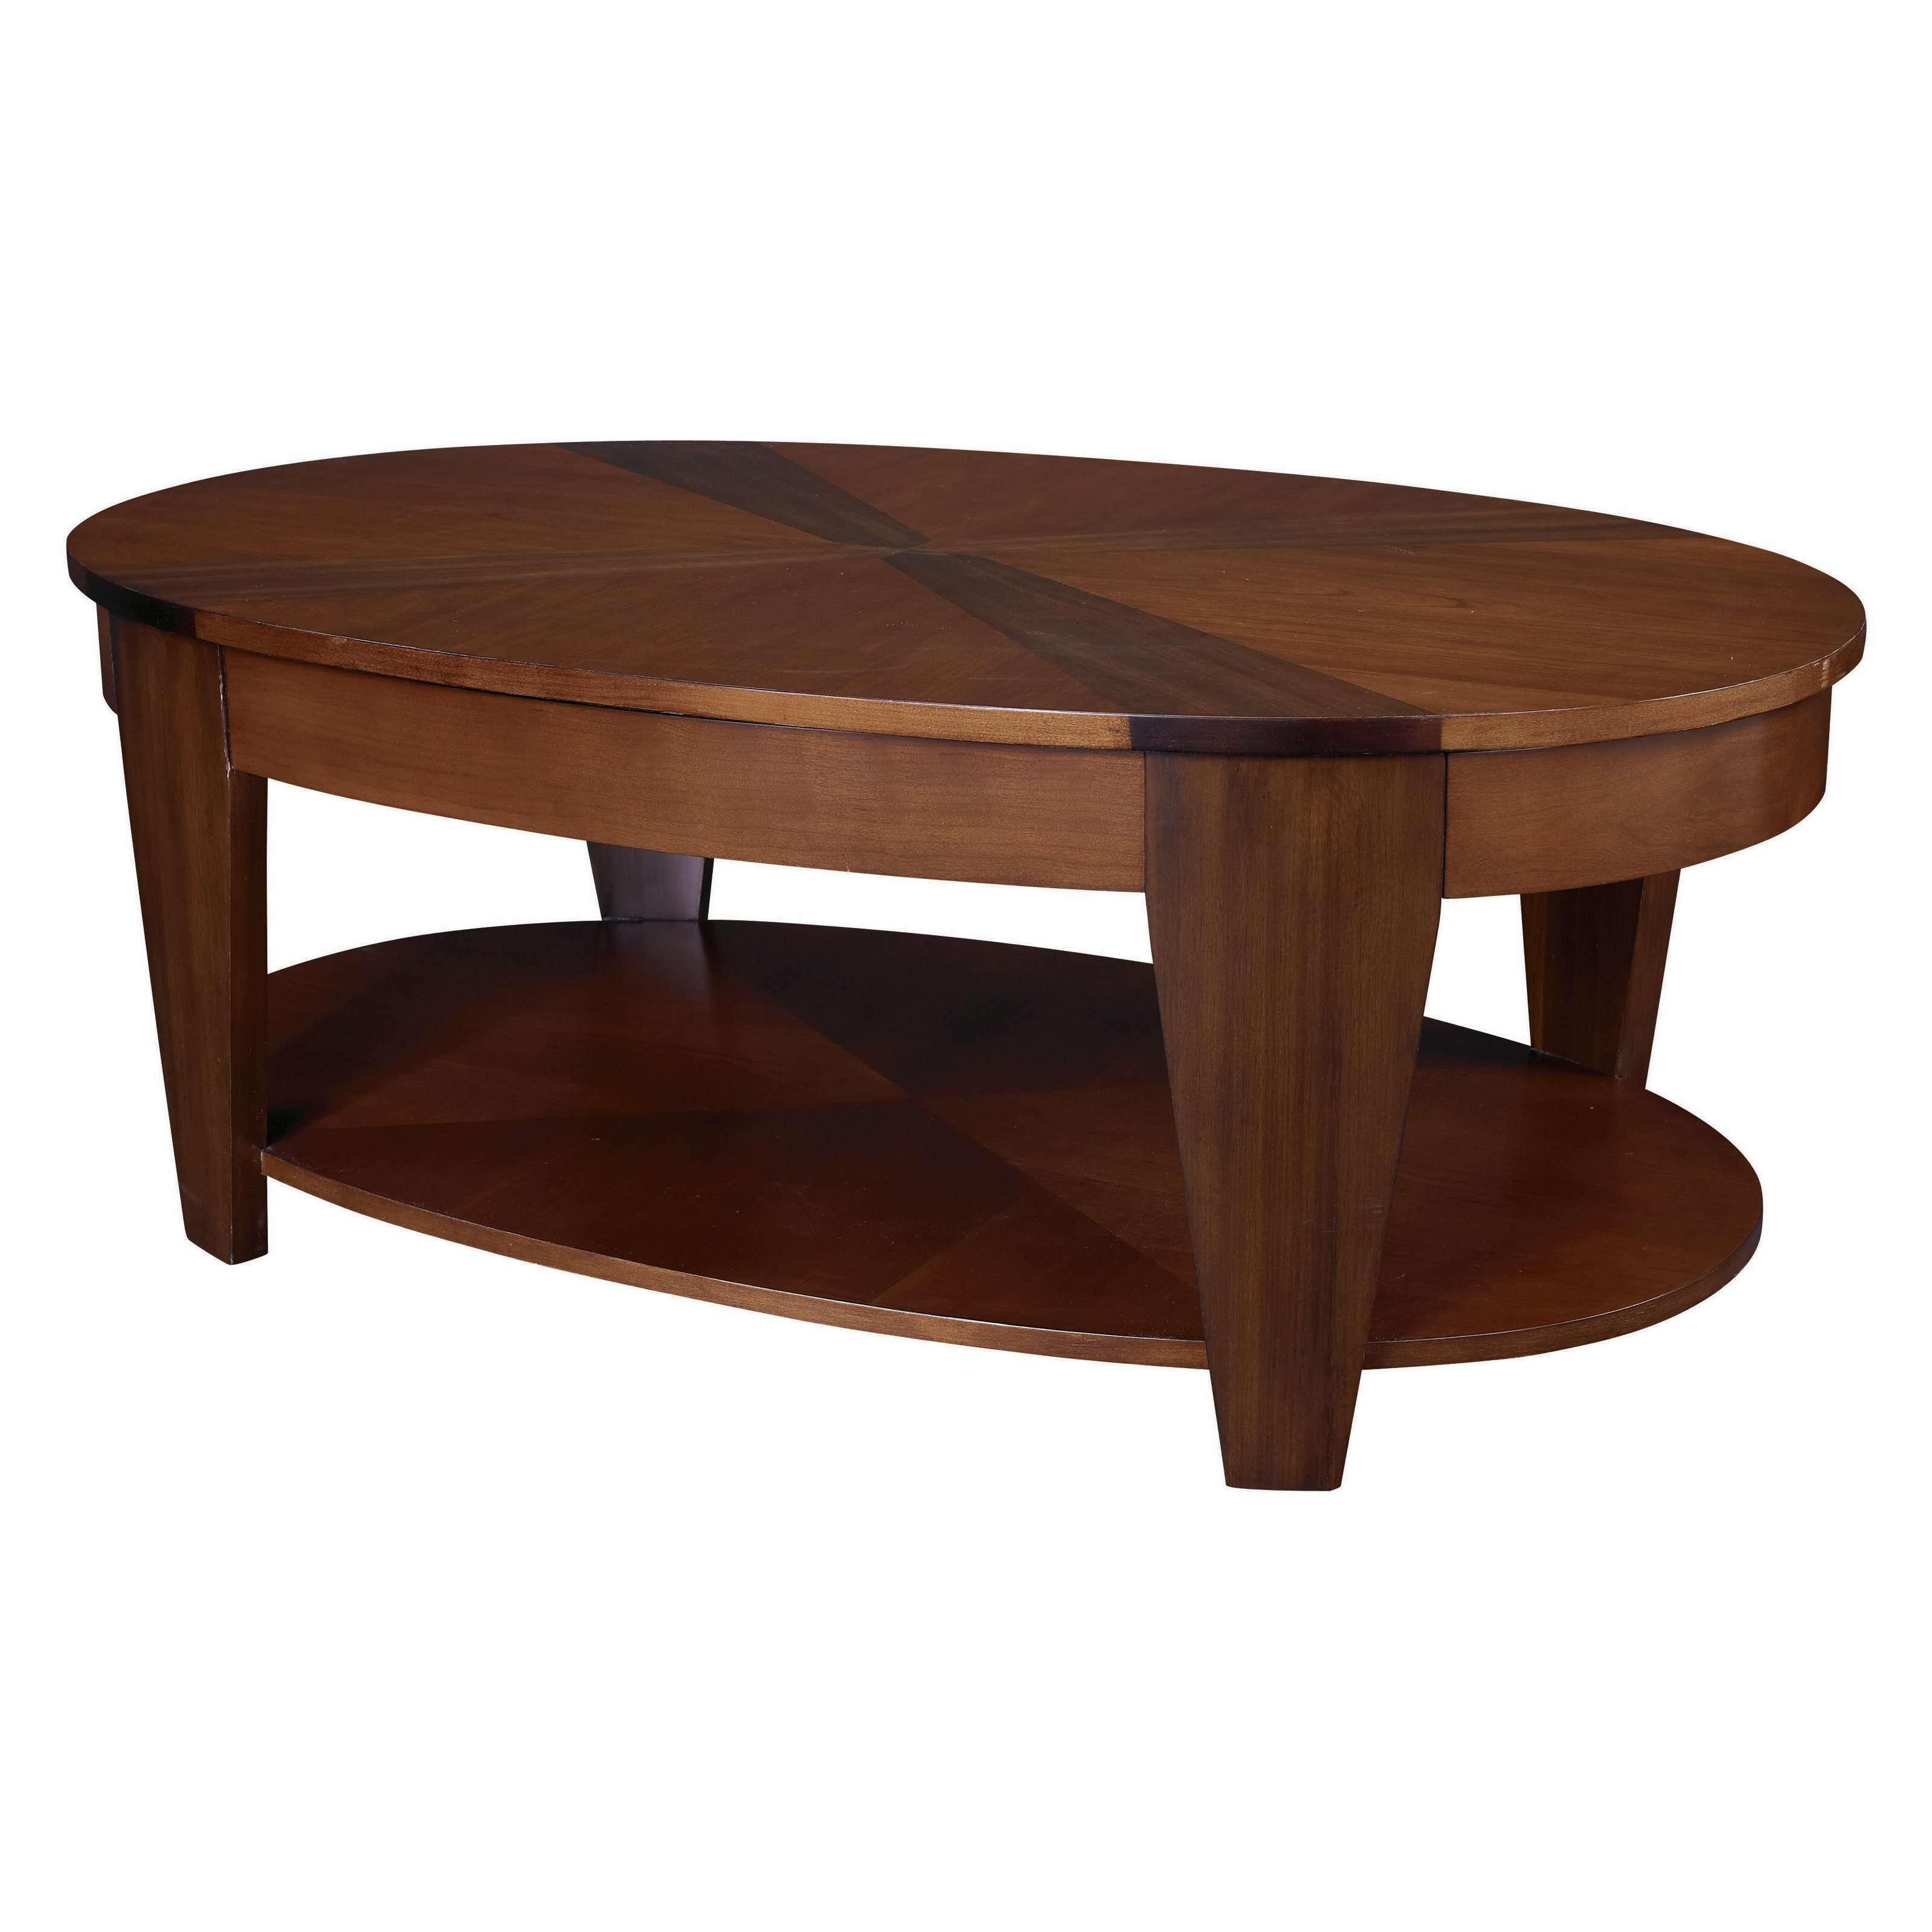 Coffee Table : Oval Coffee Table End Tables With Storage' Coffee Pertaining To Newest Oval Wood Coffee Tables (View 6 of 20)